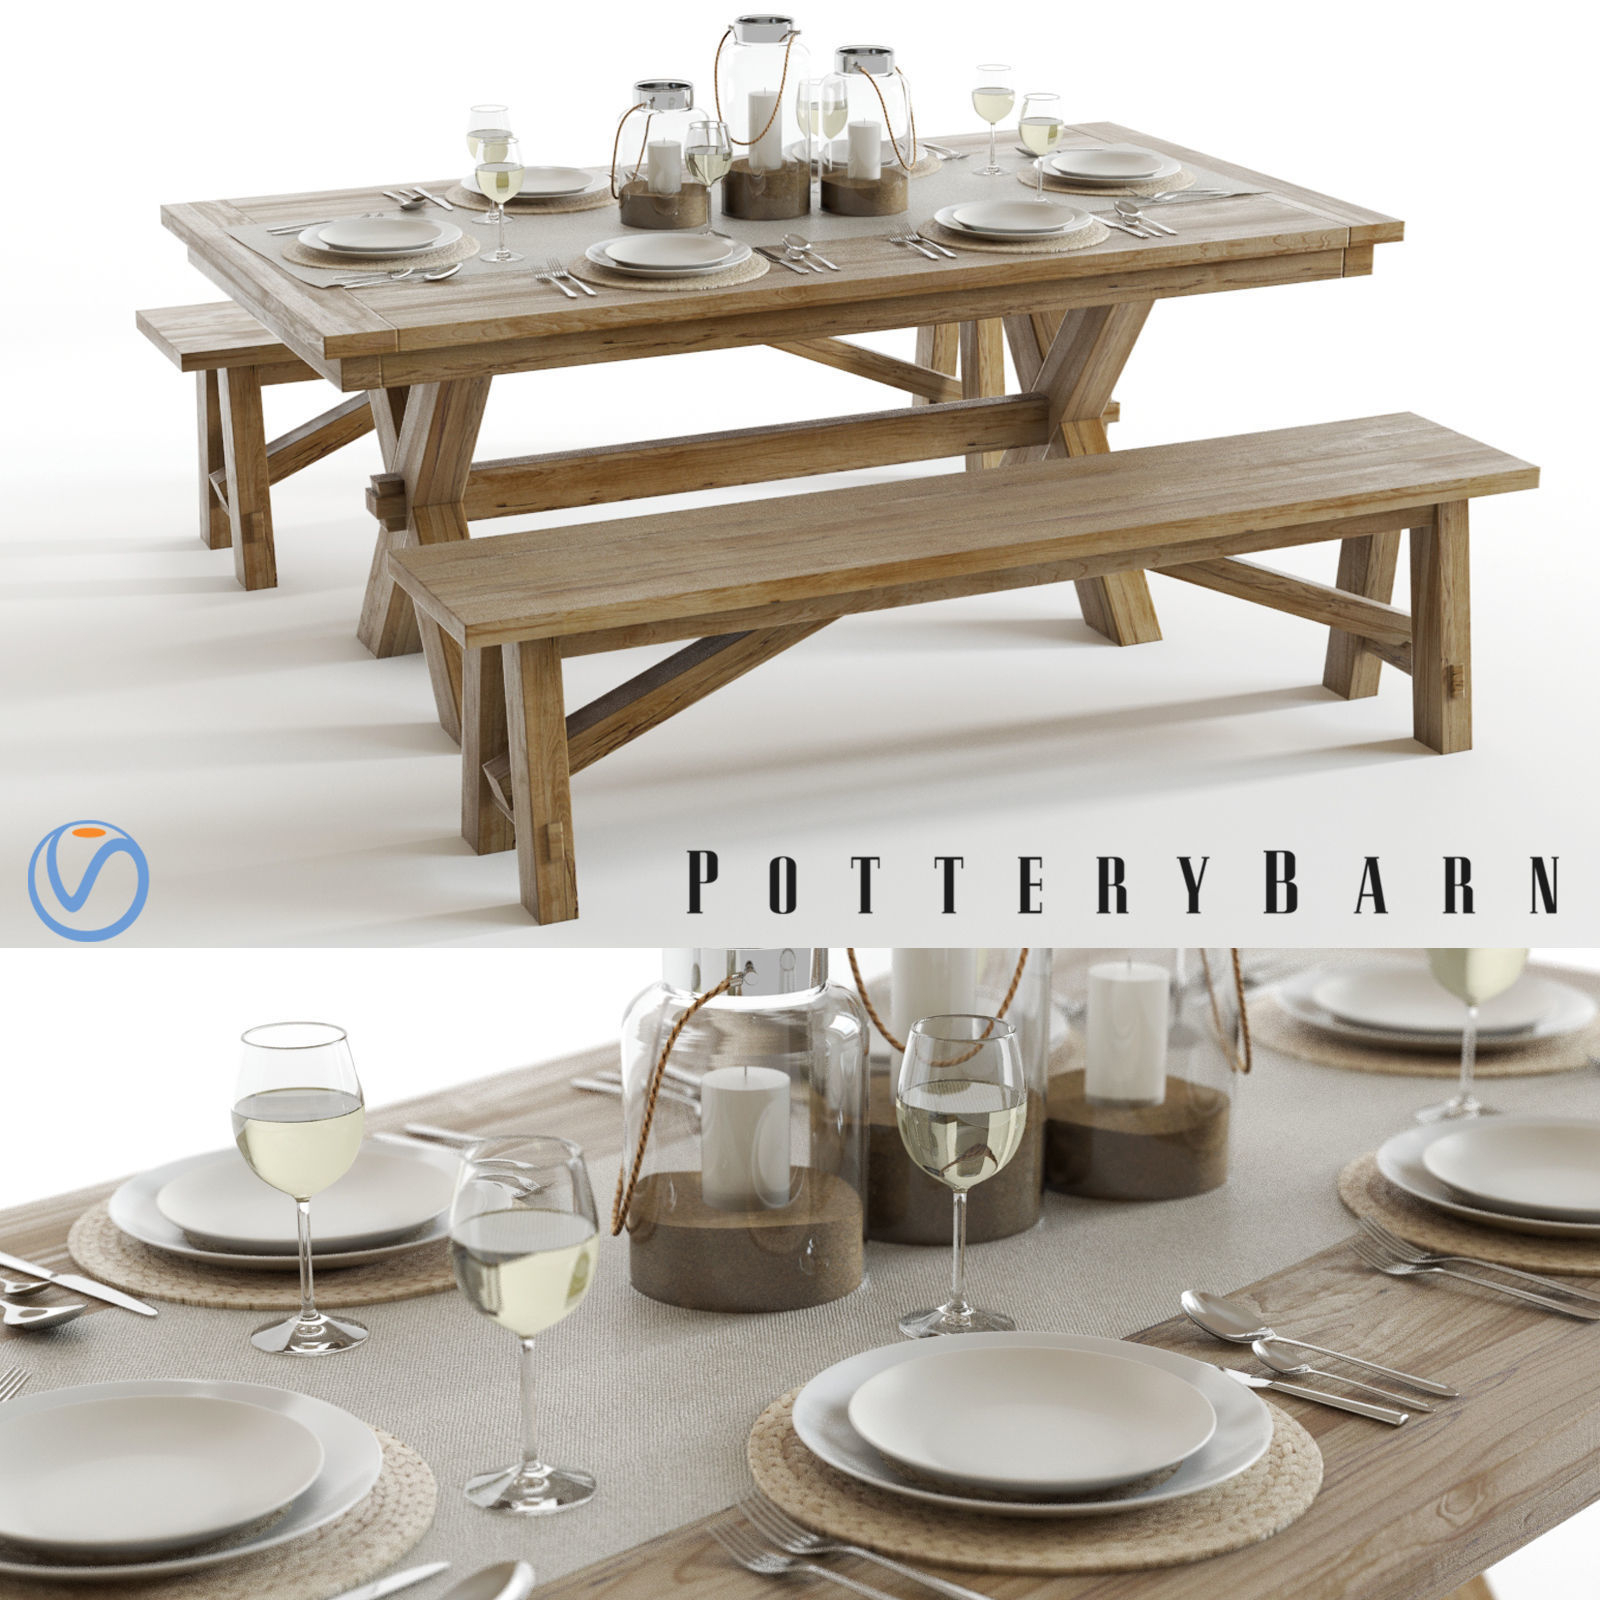 Pottery Barn Toscana Set | 3D Model Inside Most Recent Seadrift Toscana Dining Tables (View 13 of 25)